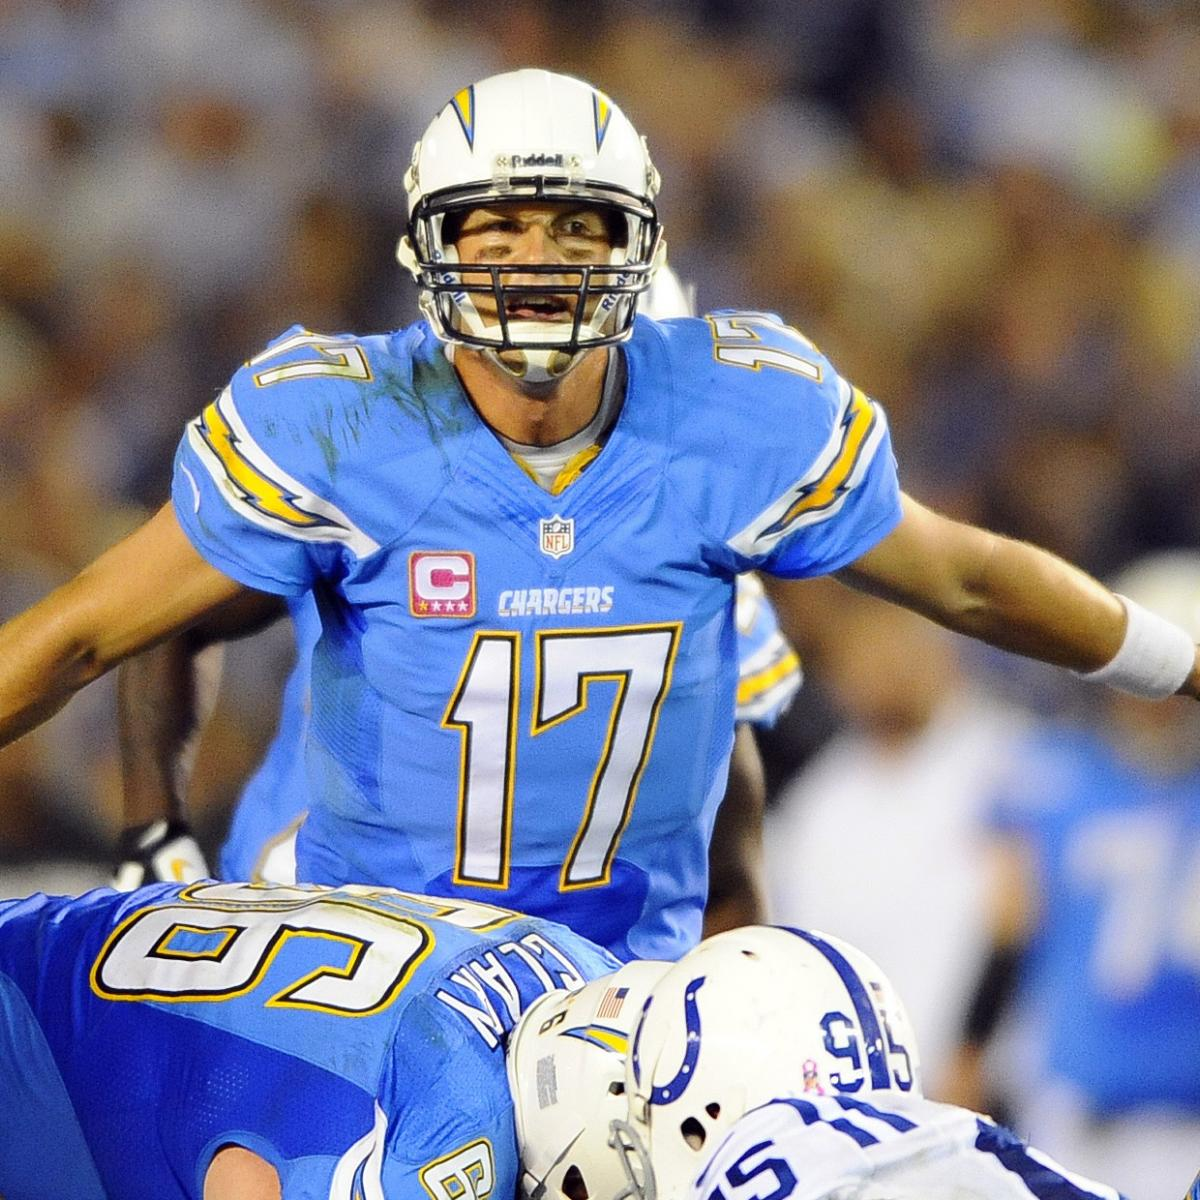 San Diego Chargers Bye Week 2014: Are The San Diego Chargers A Trick Or A Treat?